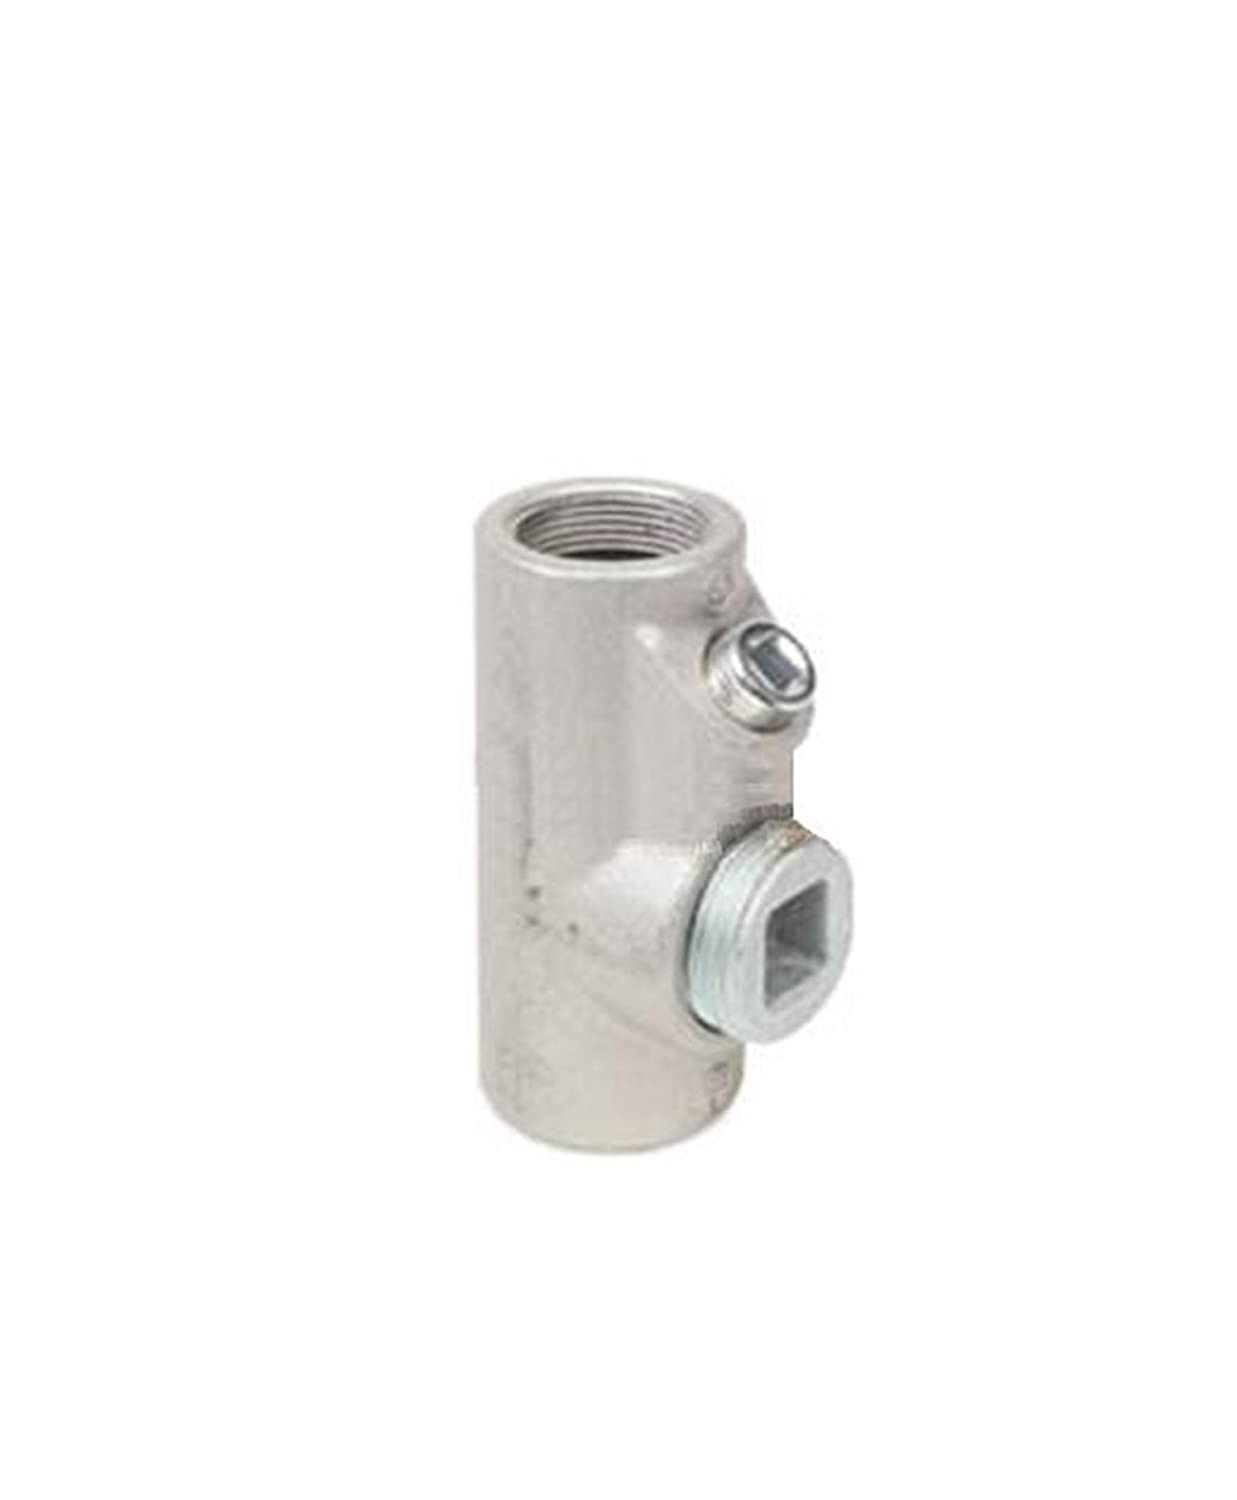 Crouse-Hinds EYSX31 Expanded Fill Sealing Female Fitting 1-Inch